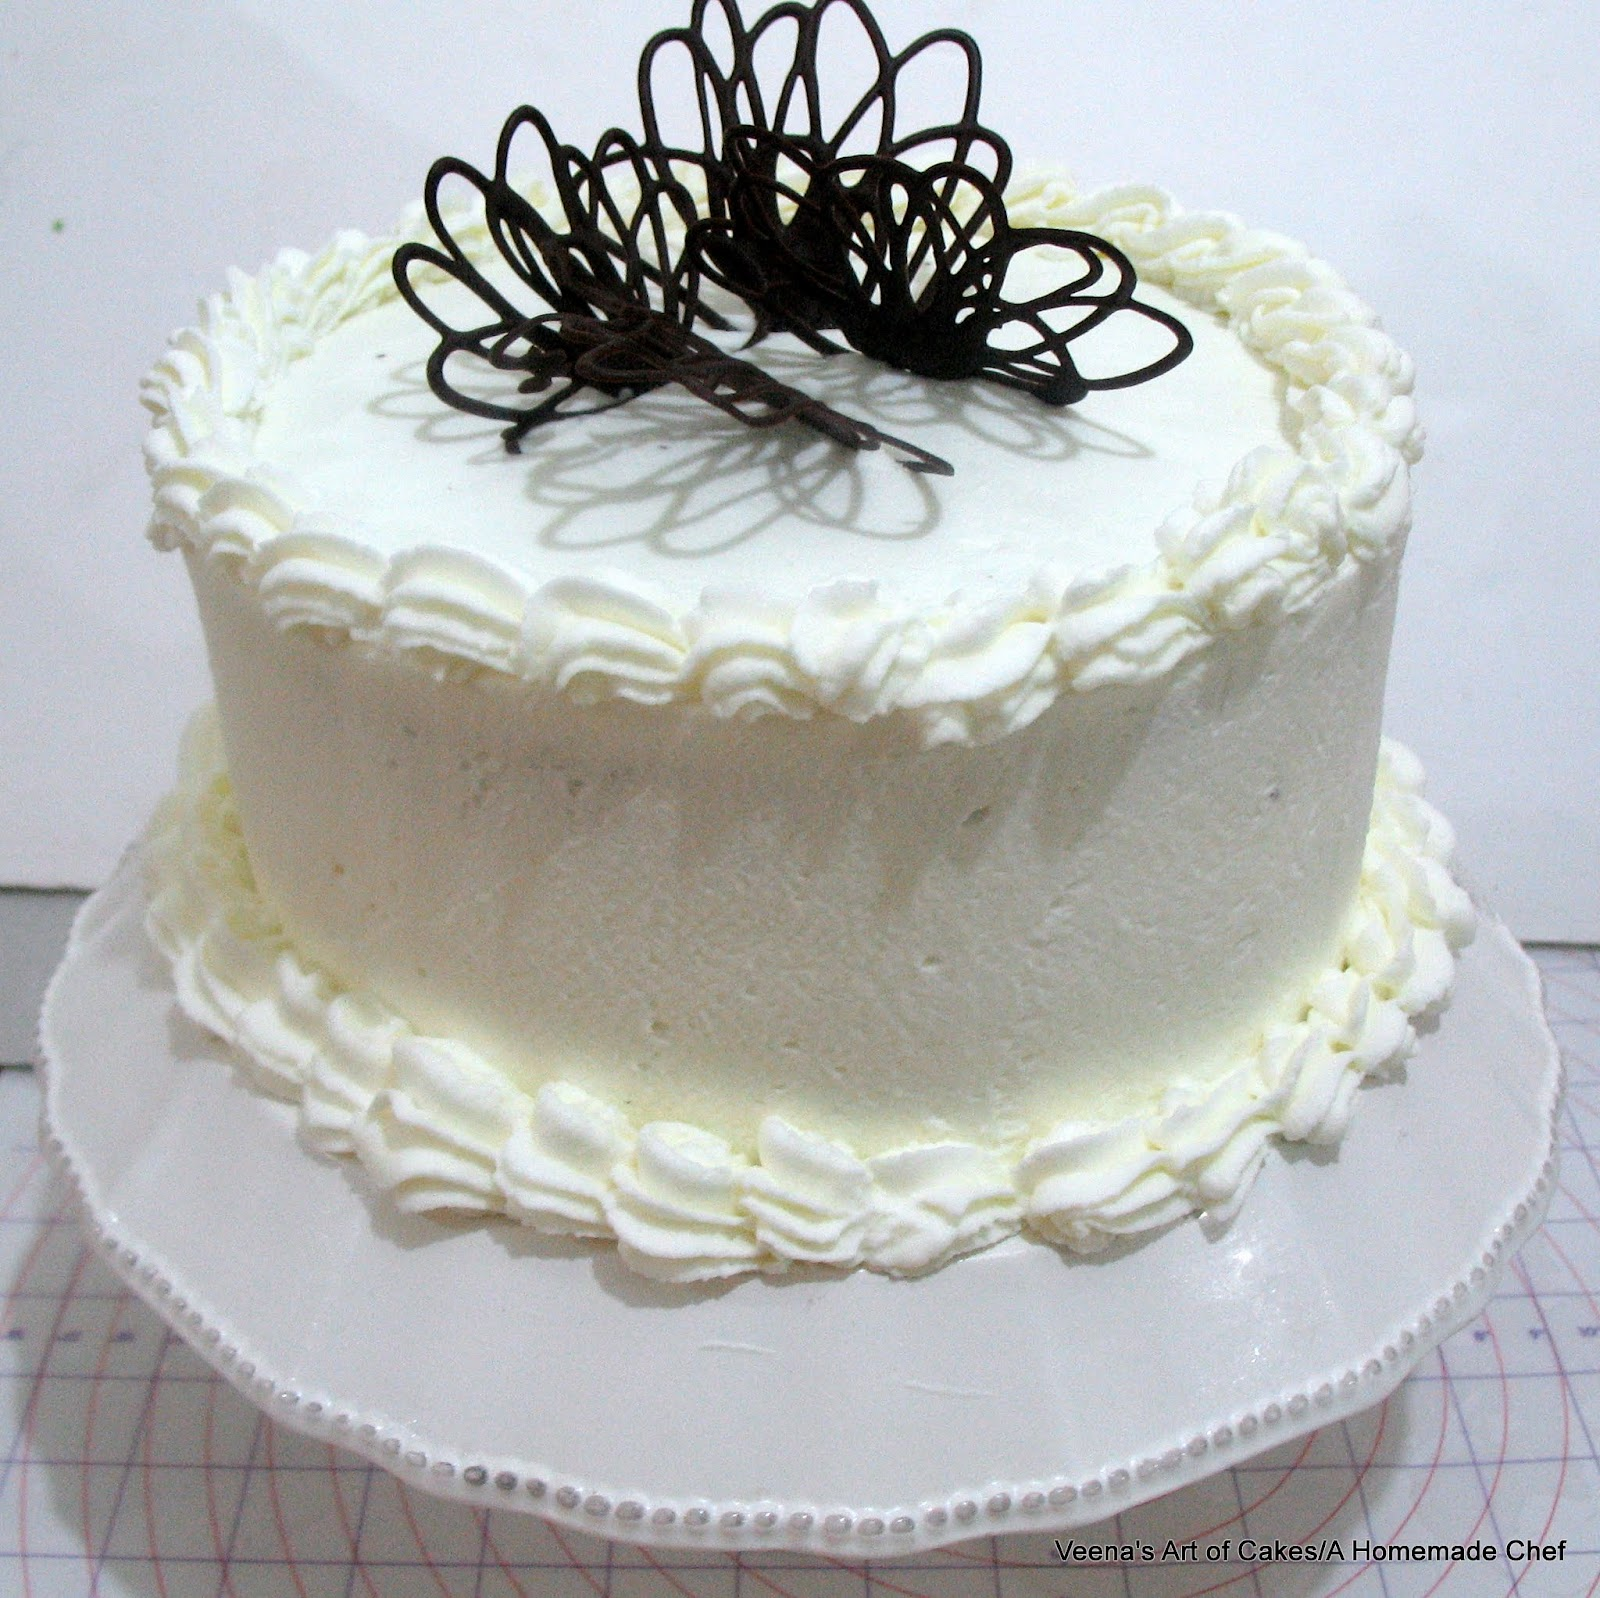 Cake Designs With Whipped Cream : Chocolate Cake with Whipped Cream - Veena Azmanov